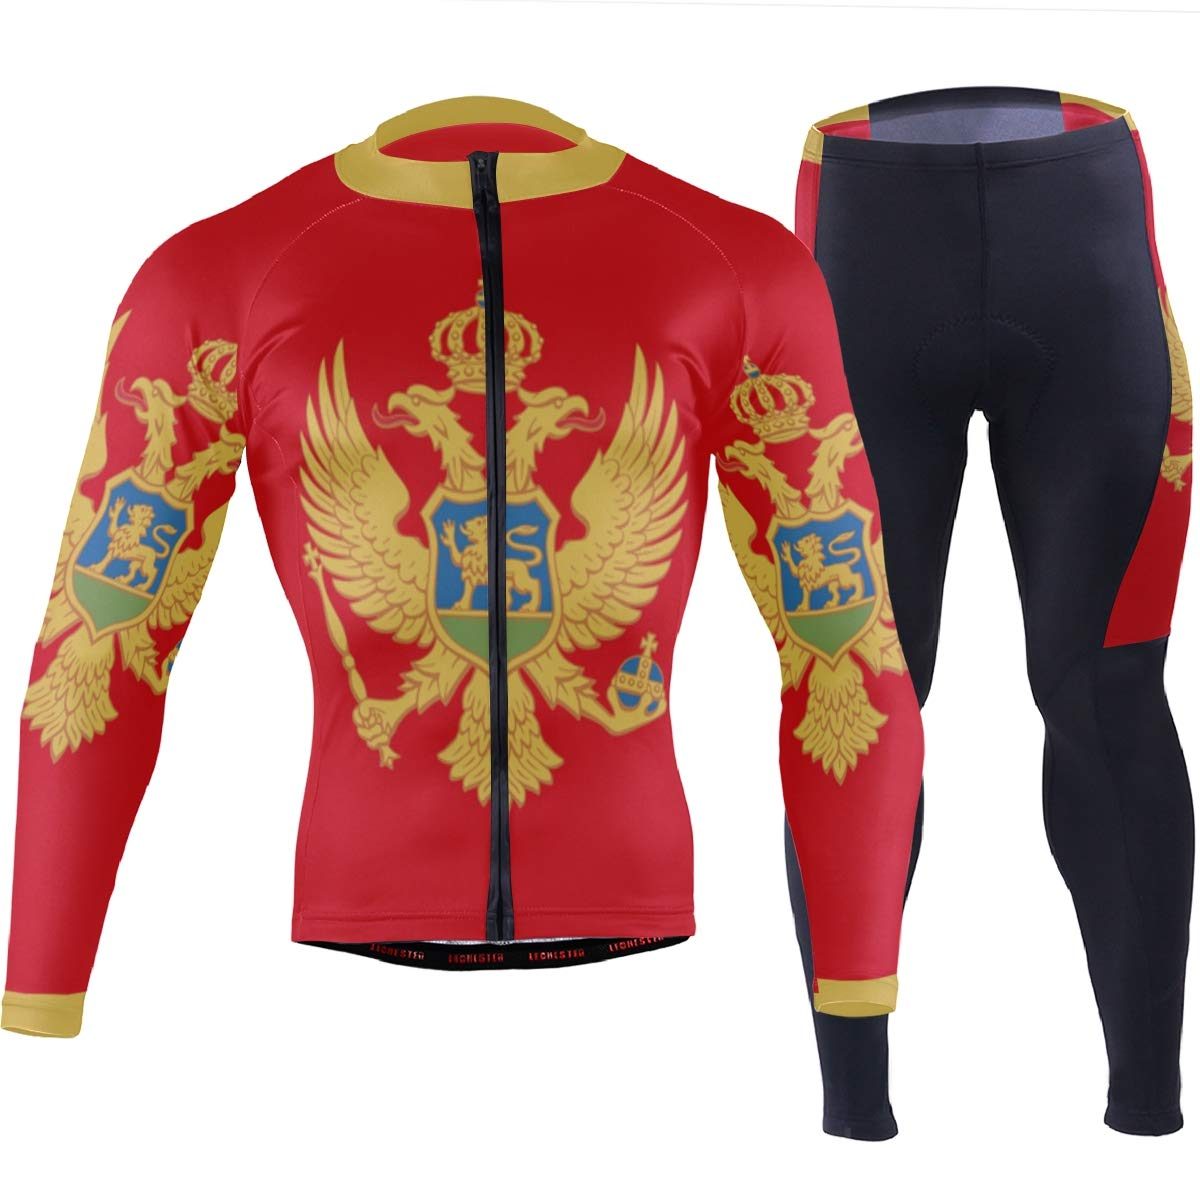 CHINEIN Men's Cycling Jersey Long Sleeve with 3 Rear Pockets Suit Montenegro Flag by CHINEIN